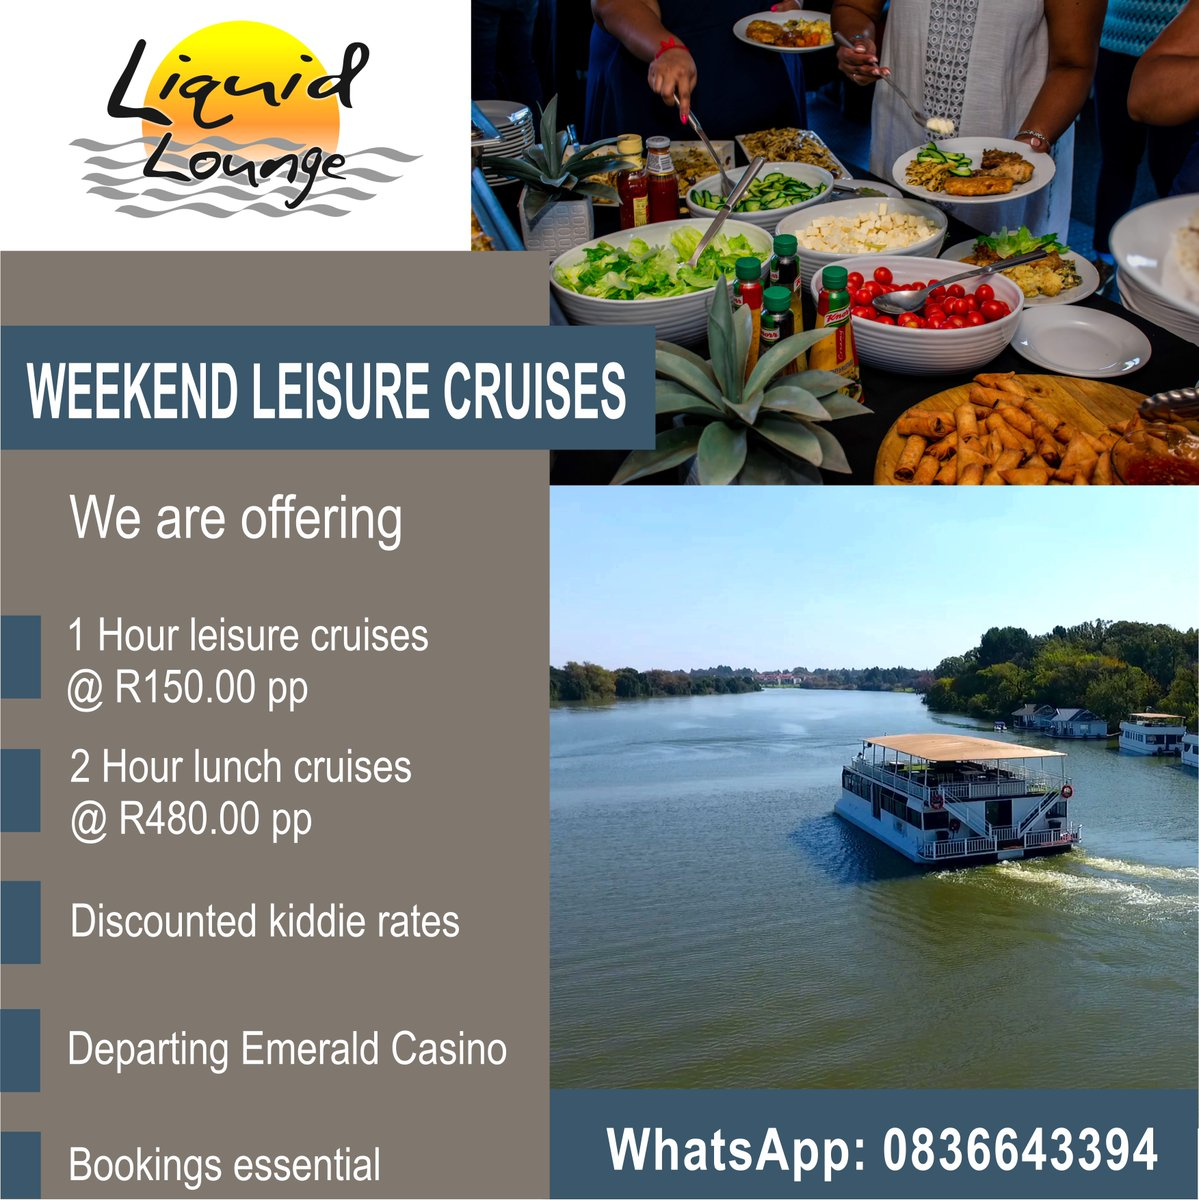 Ahoy from the Vaal  We're expecting a perfect Summer weekend 🌞  Come join us for a cruise   Covid safety measures & restrictions in place 💪  #CruisetheVaal #VaalRiver #LiquidLounge #Cruises #SundayLunch #Summer #WeekendVibes #Jozi #Gauteng